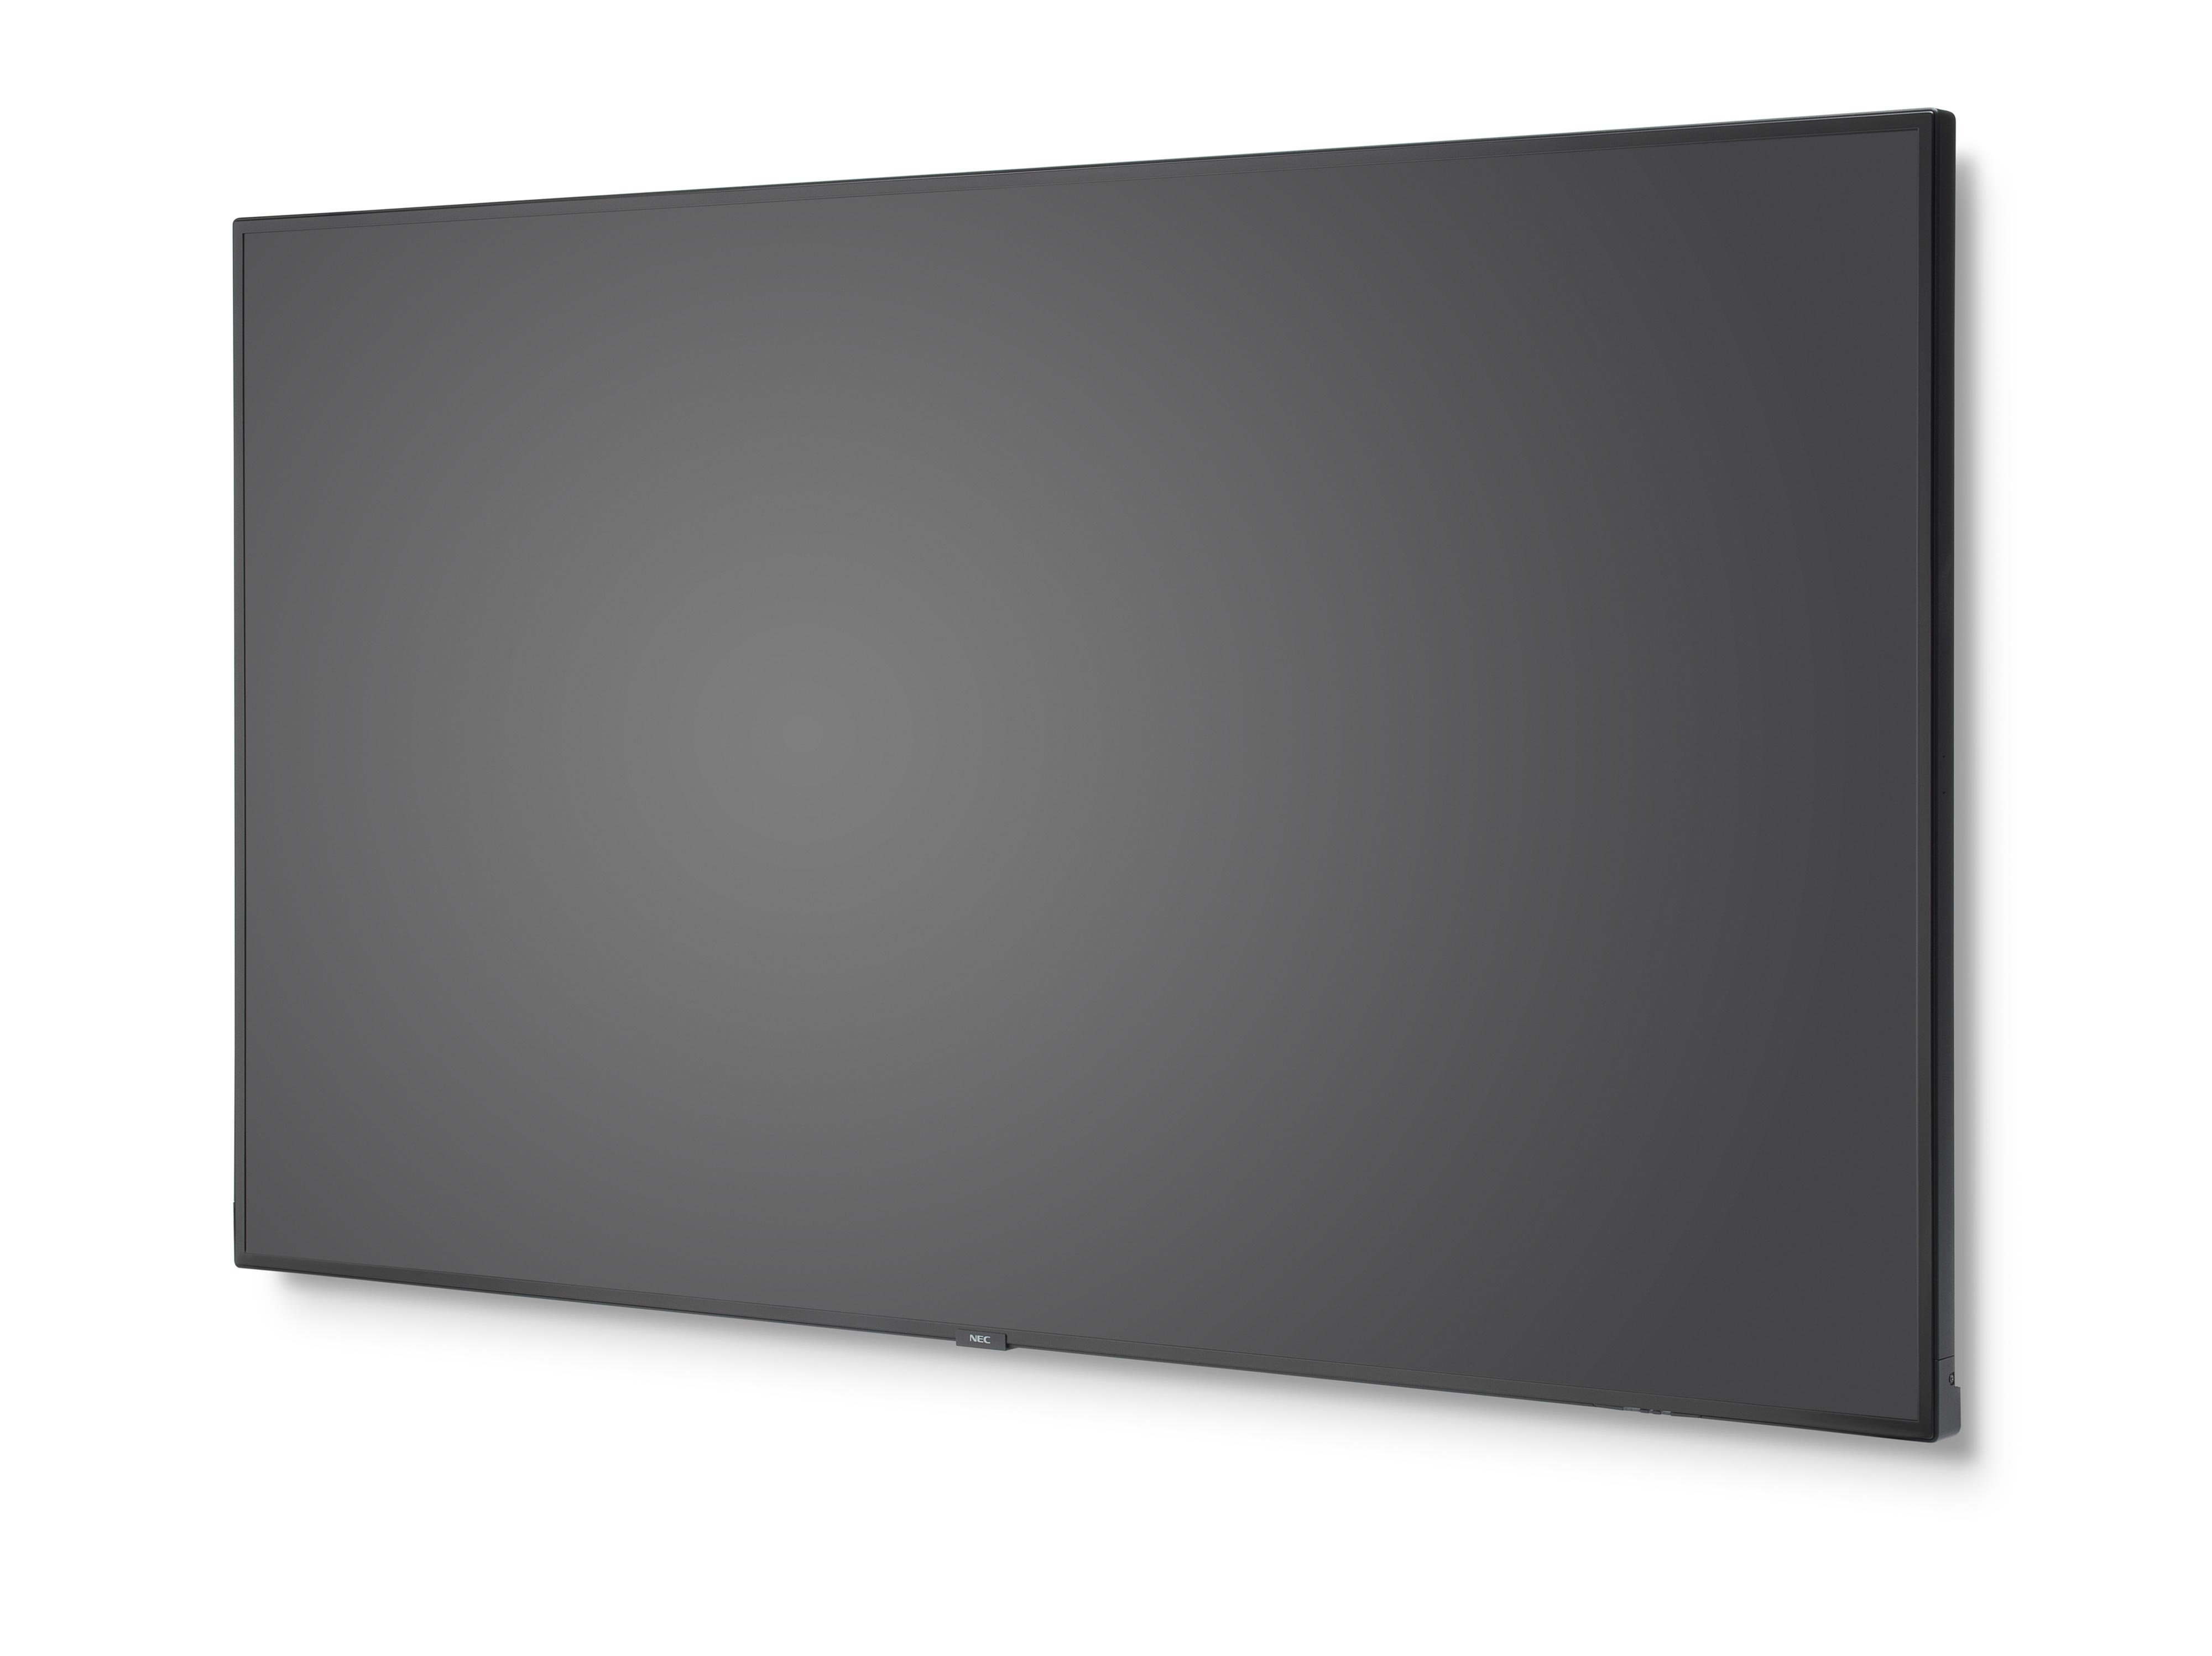 Large Format Display MultiSync V864Q von NEC